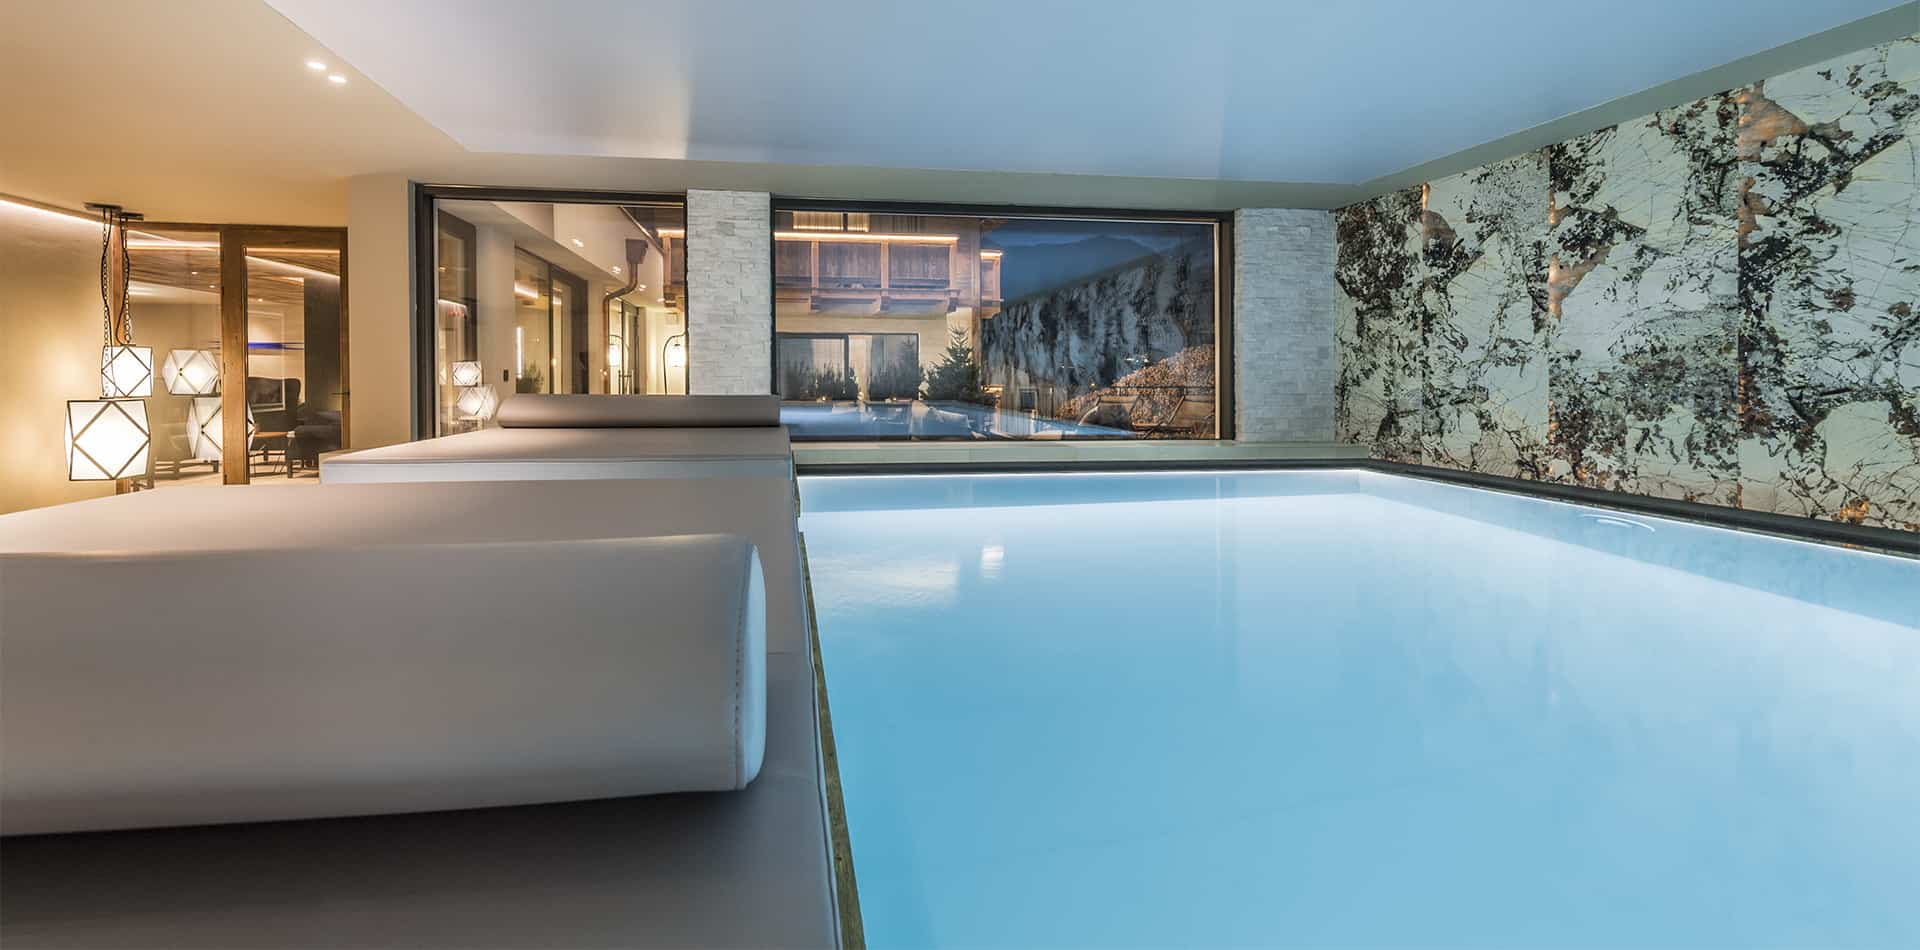 Luxury Indoor Swimming Pool